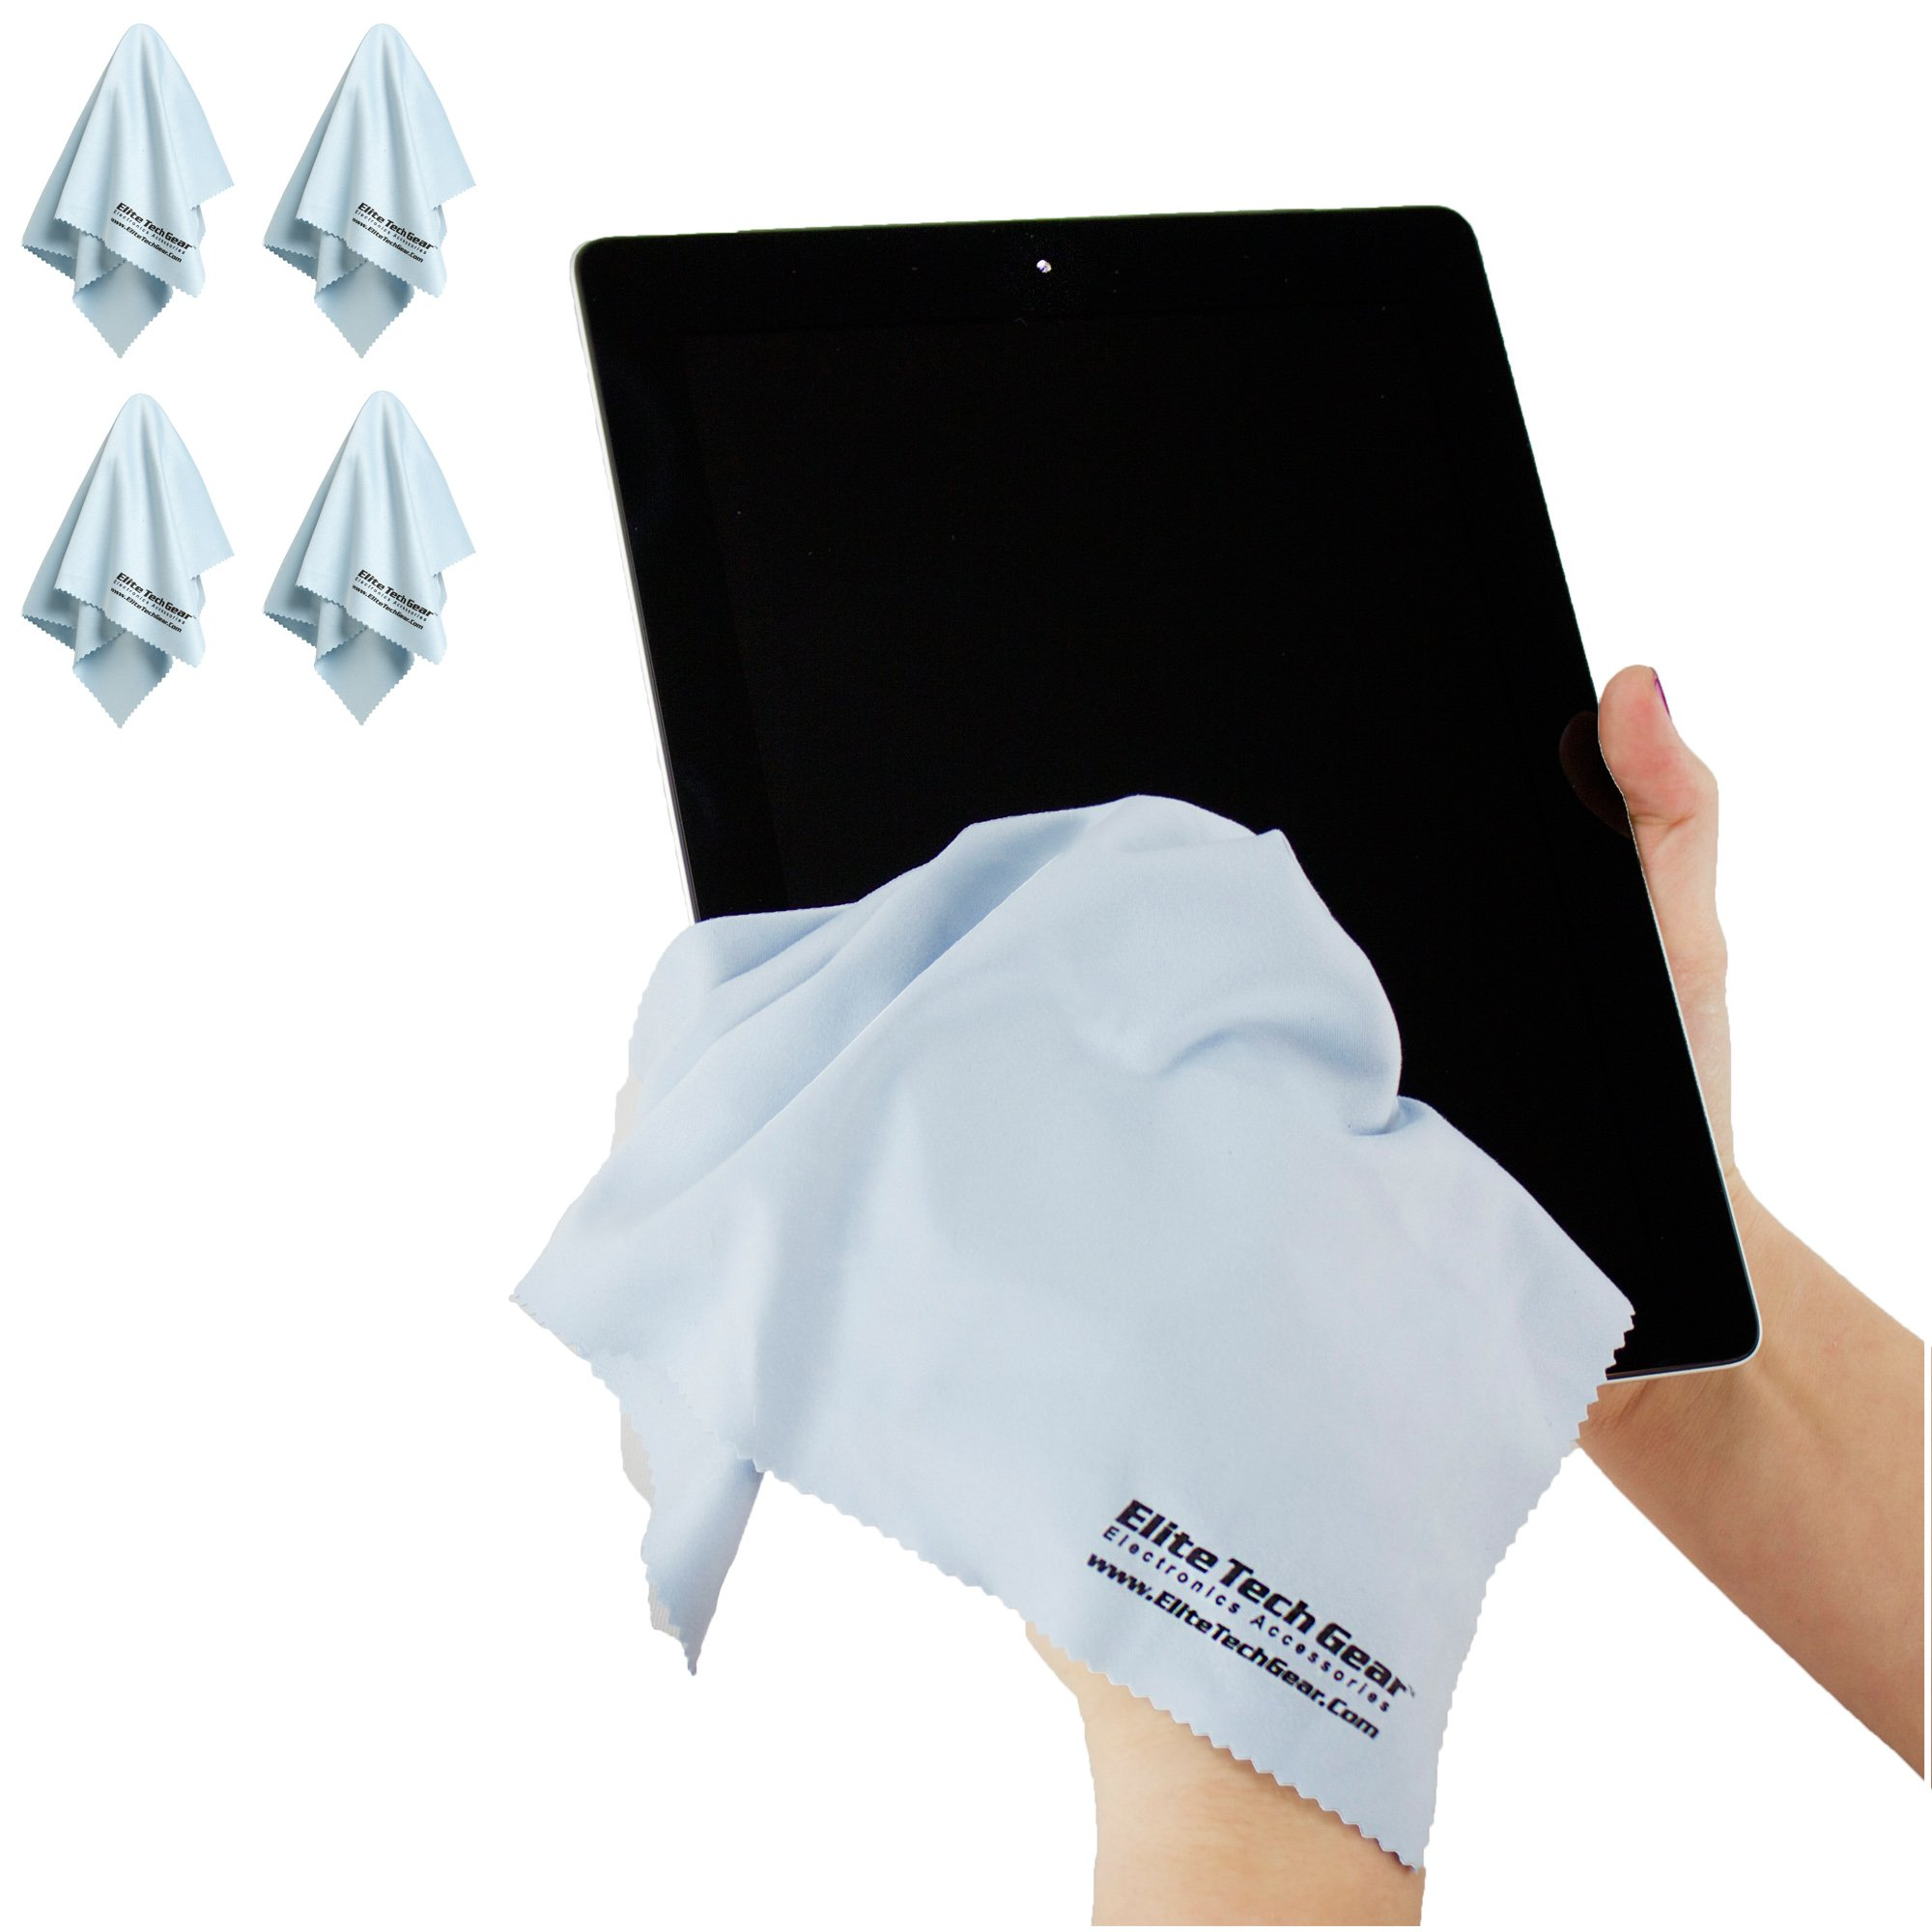 "(4-Pack''OVERSIZED'') The Most Amazing Microfiber Cleaning Cloths - Perfect For Cleaning All Electronic Device Screens, Eyeglasses, Tablets & Delicate Surfaces (4 Oversized 12''x12"")"